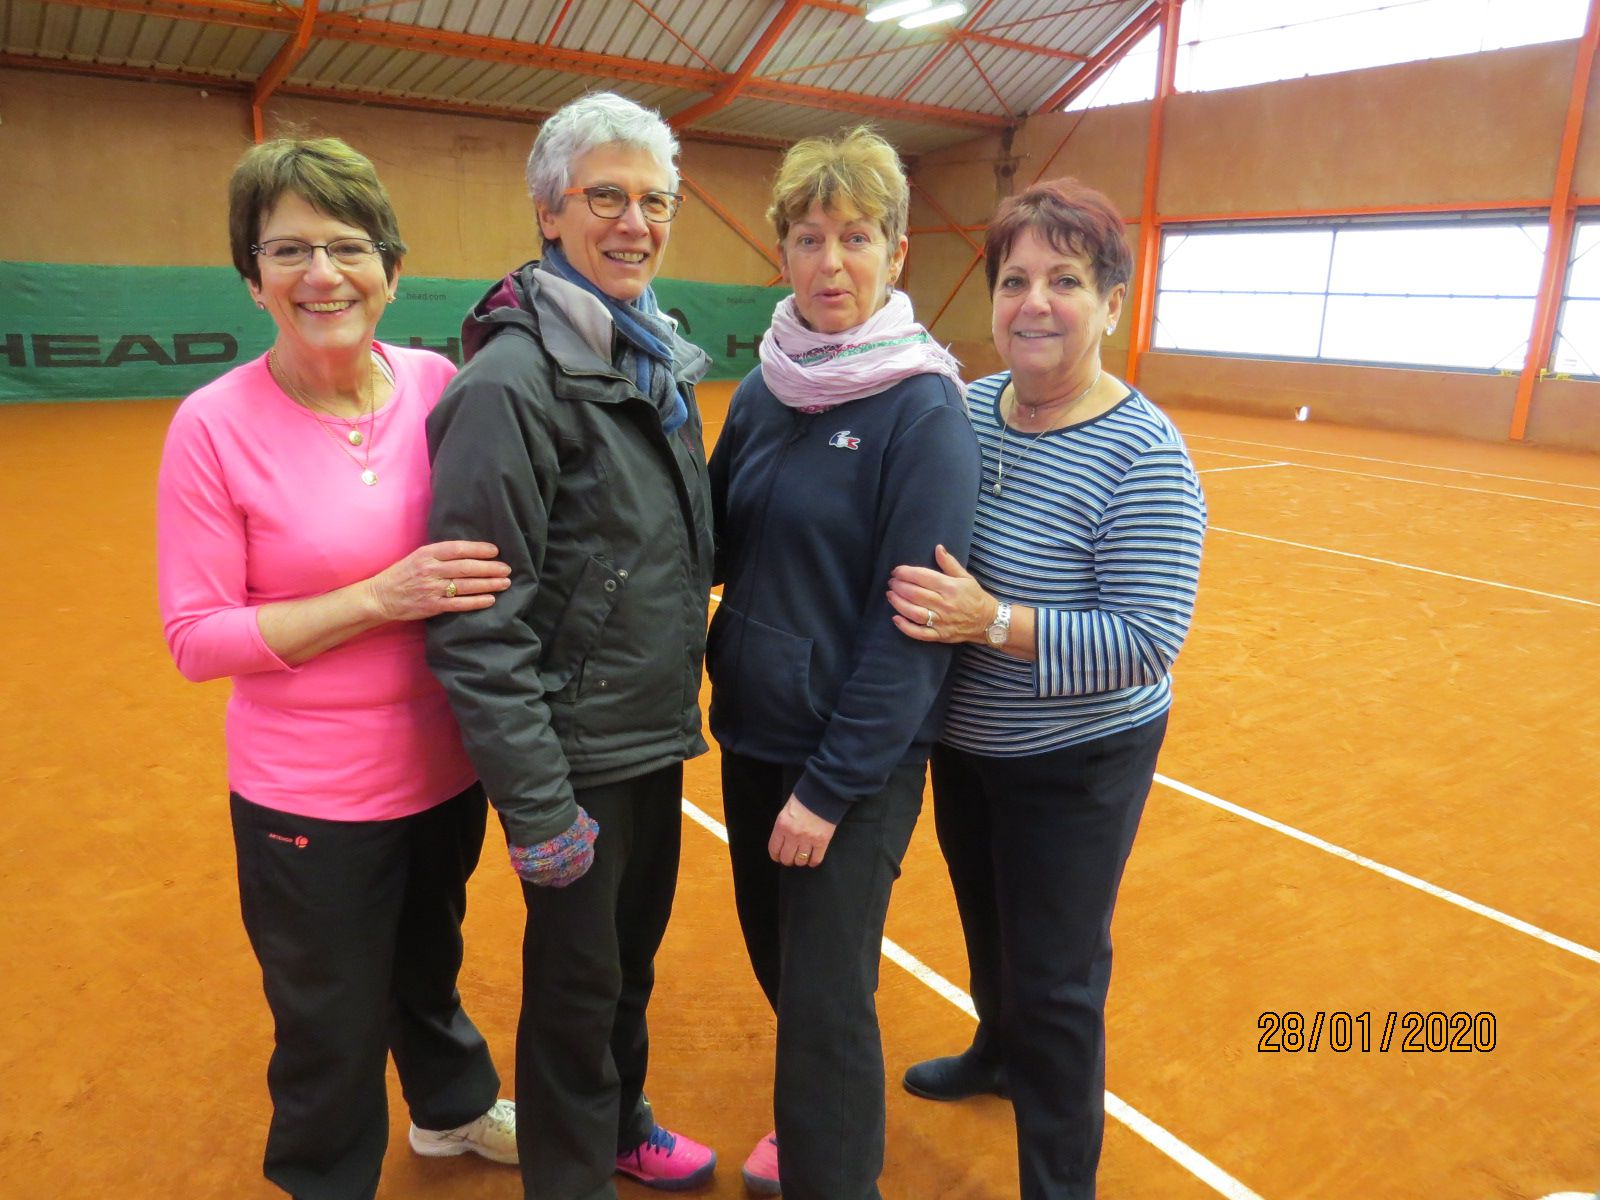 Chartres : Laurence Trubert, Dominique Halay, Sylvie Moisan, Joëlle Morin